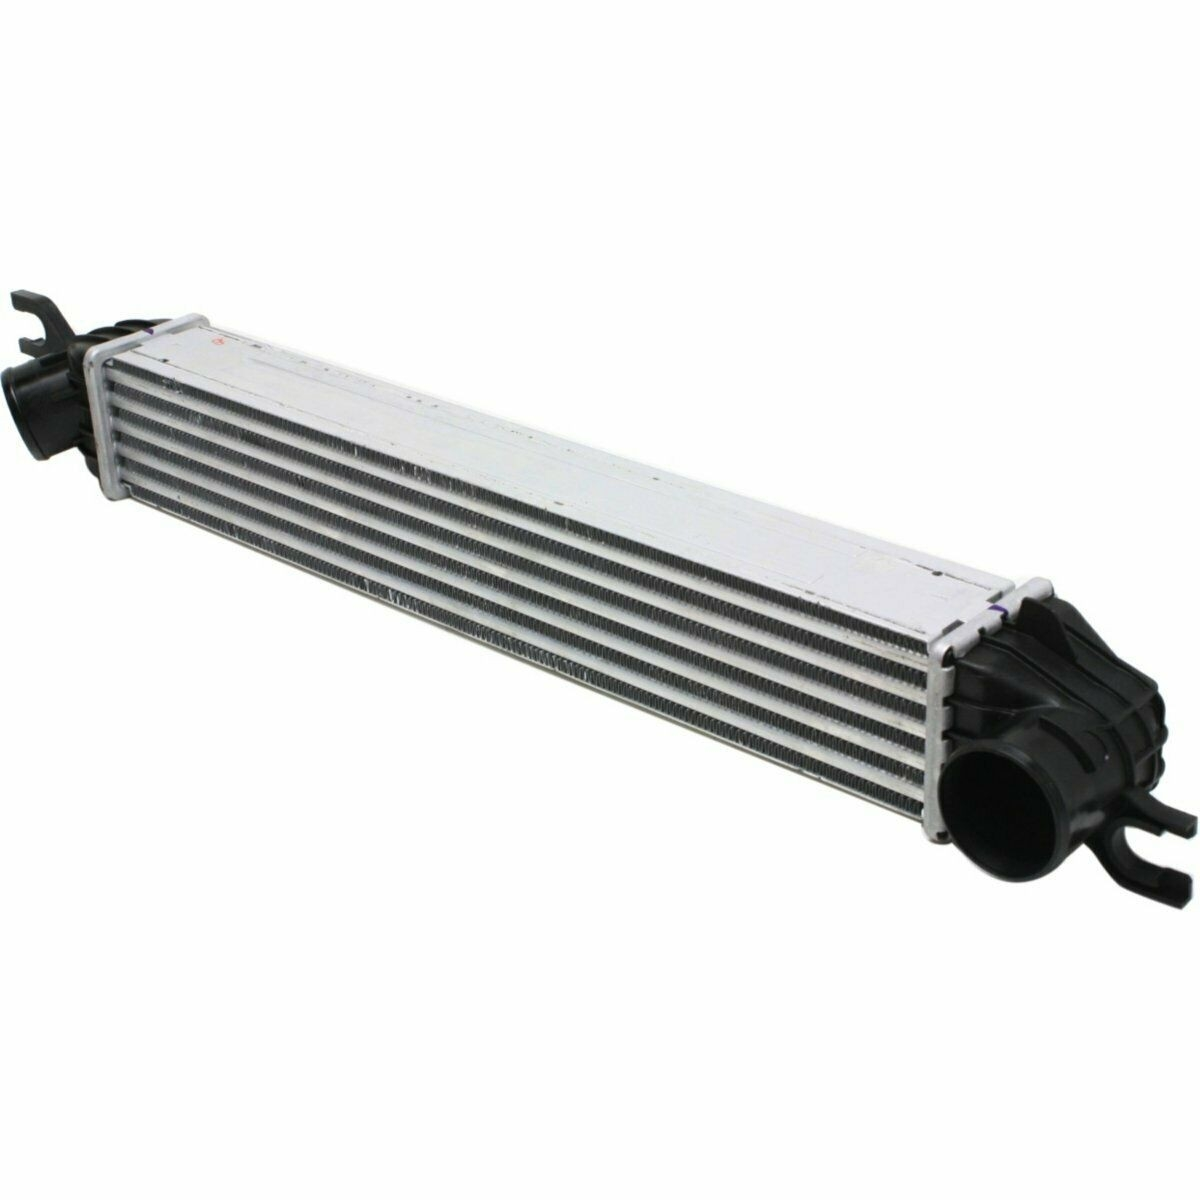 New Intercooler For Mini Cooper 2007-2015 MC3012100